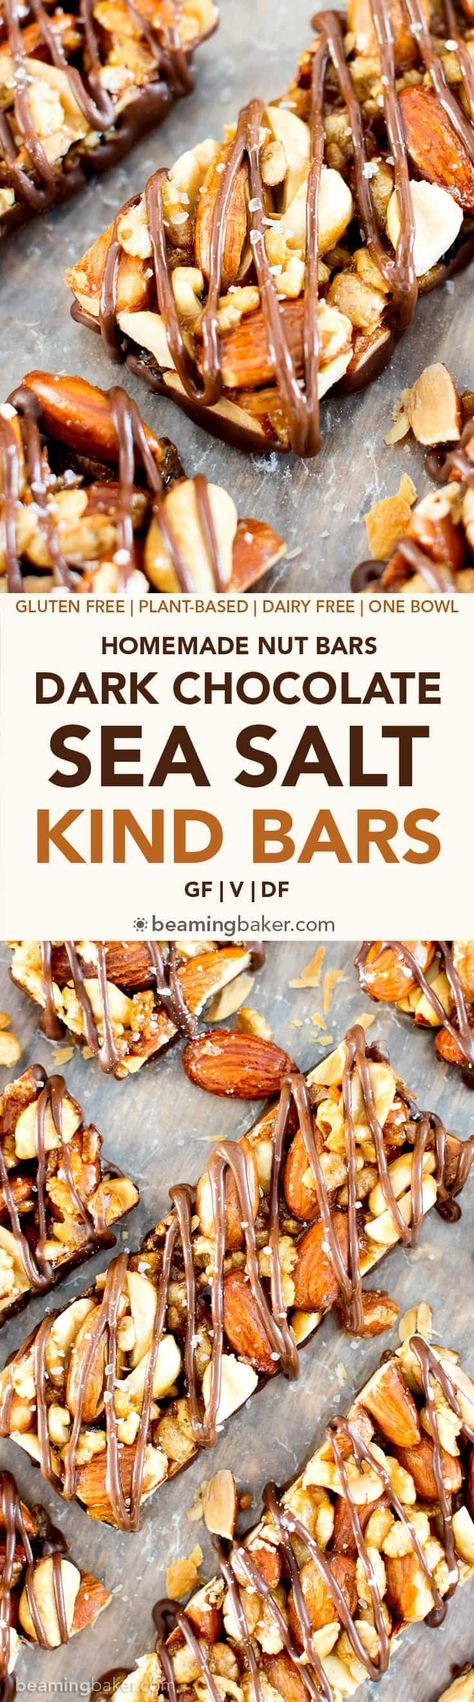 Homemade Dark Chocolate Sea Salt KIND Nut Bars (V, GF, DF): a protein-rich recipe for homemade KIND bars drizzled in dark chocolate and sprinkled with sea salt. Vegan, Gluten Free, Dairy-Free, Protein-Packed.